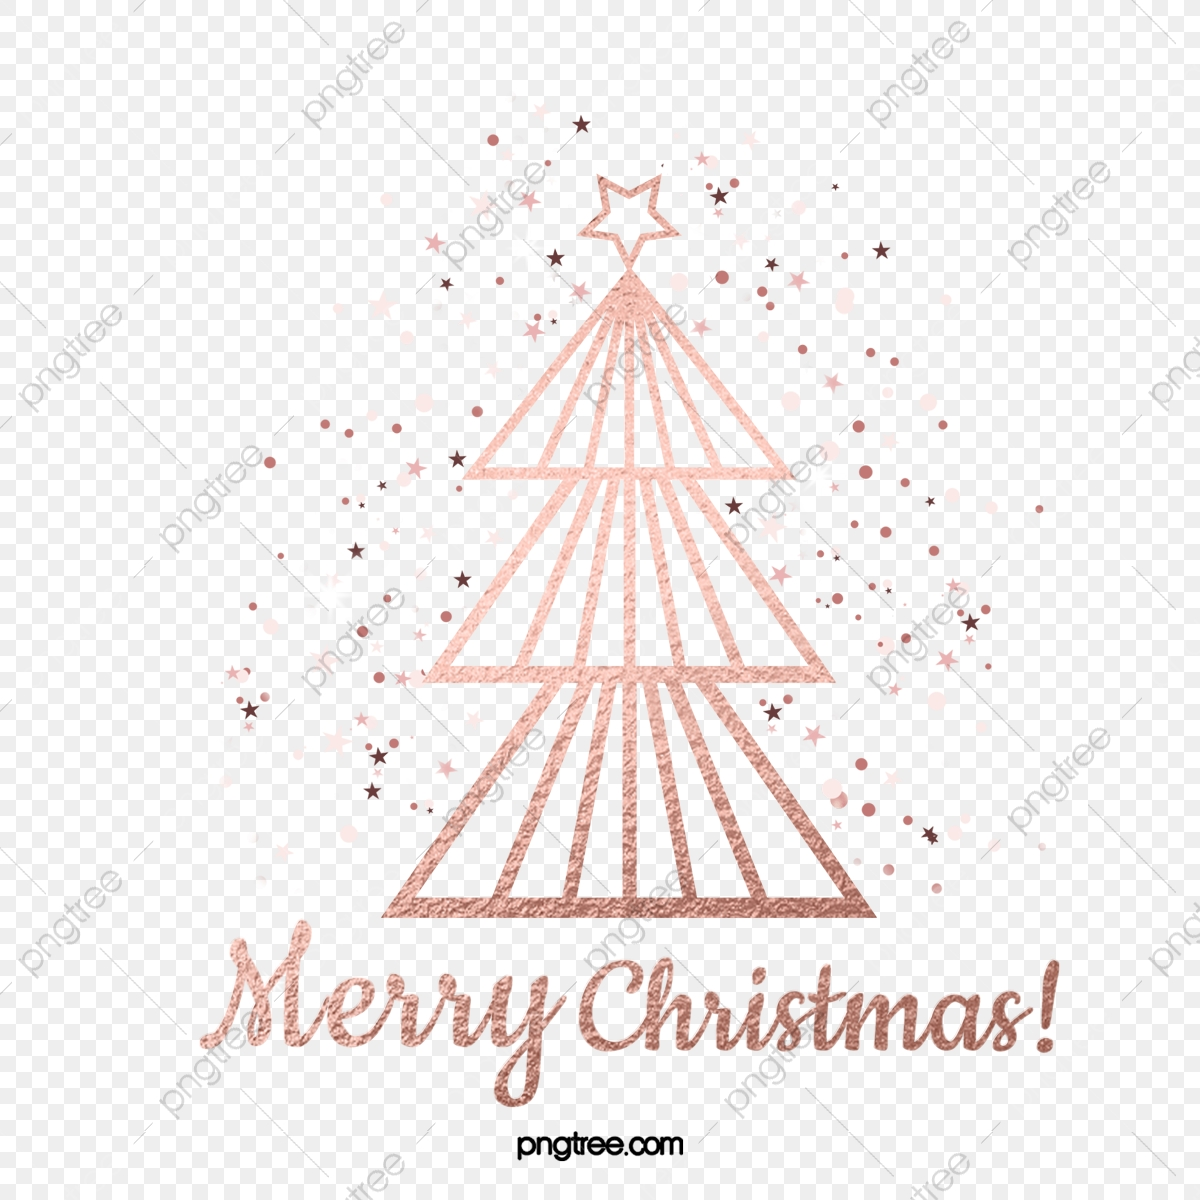 Rose Gold Christmas Tree Stars Shining Decoration Rose Gold New Year Texture Png Transparent Clipart Image And Psd File For Free Download